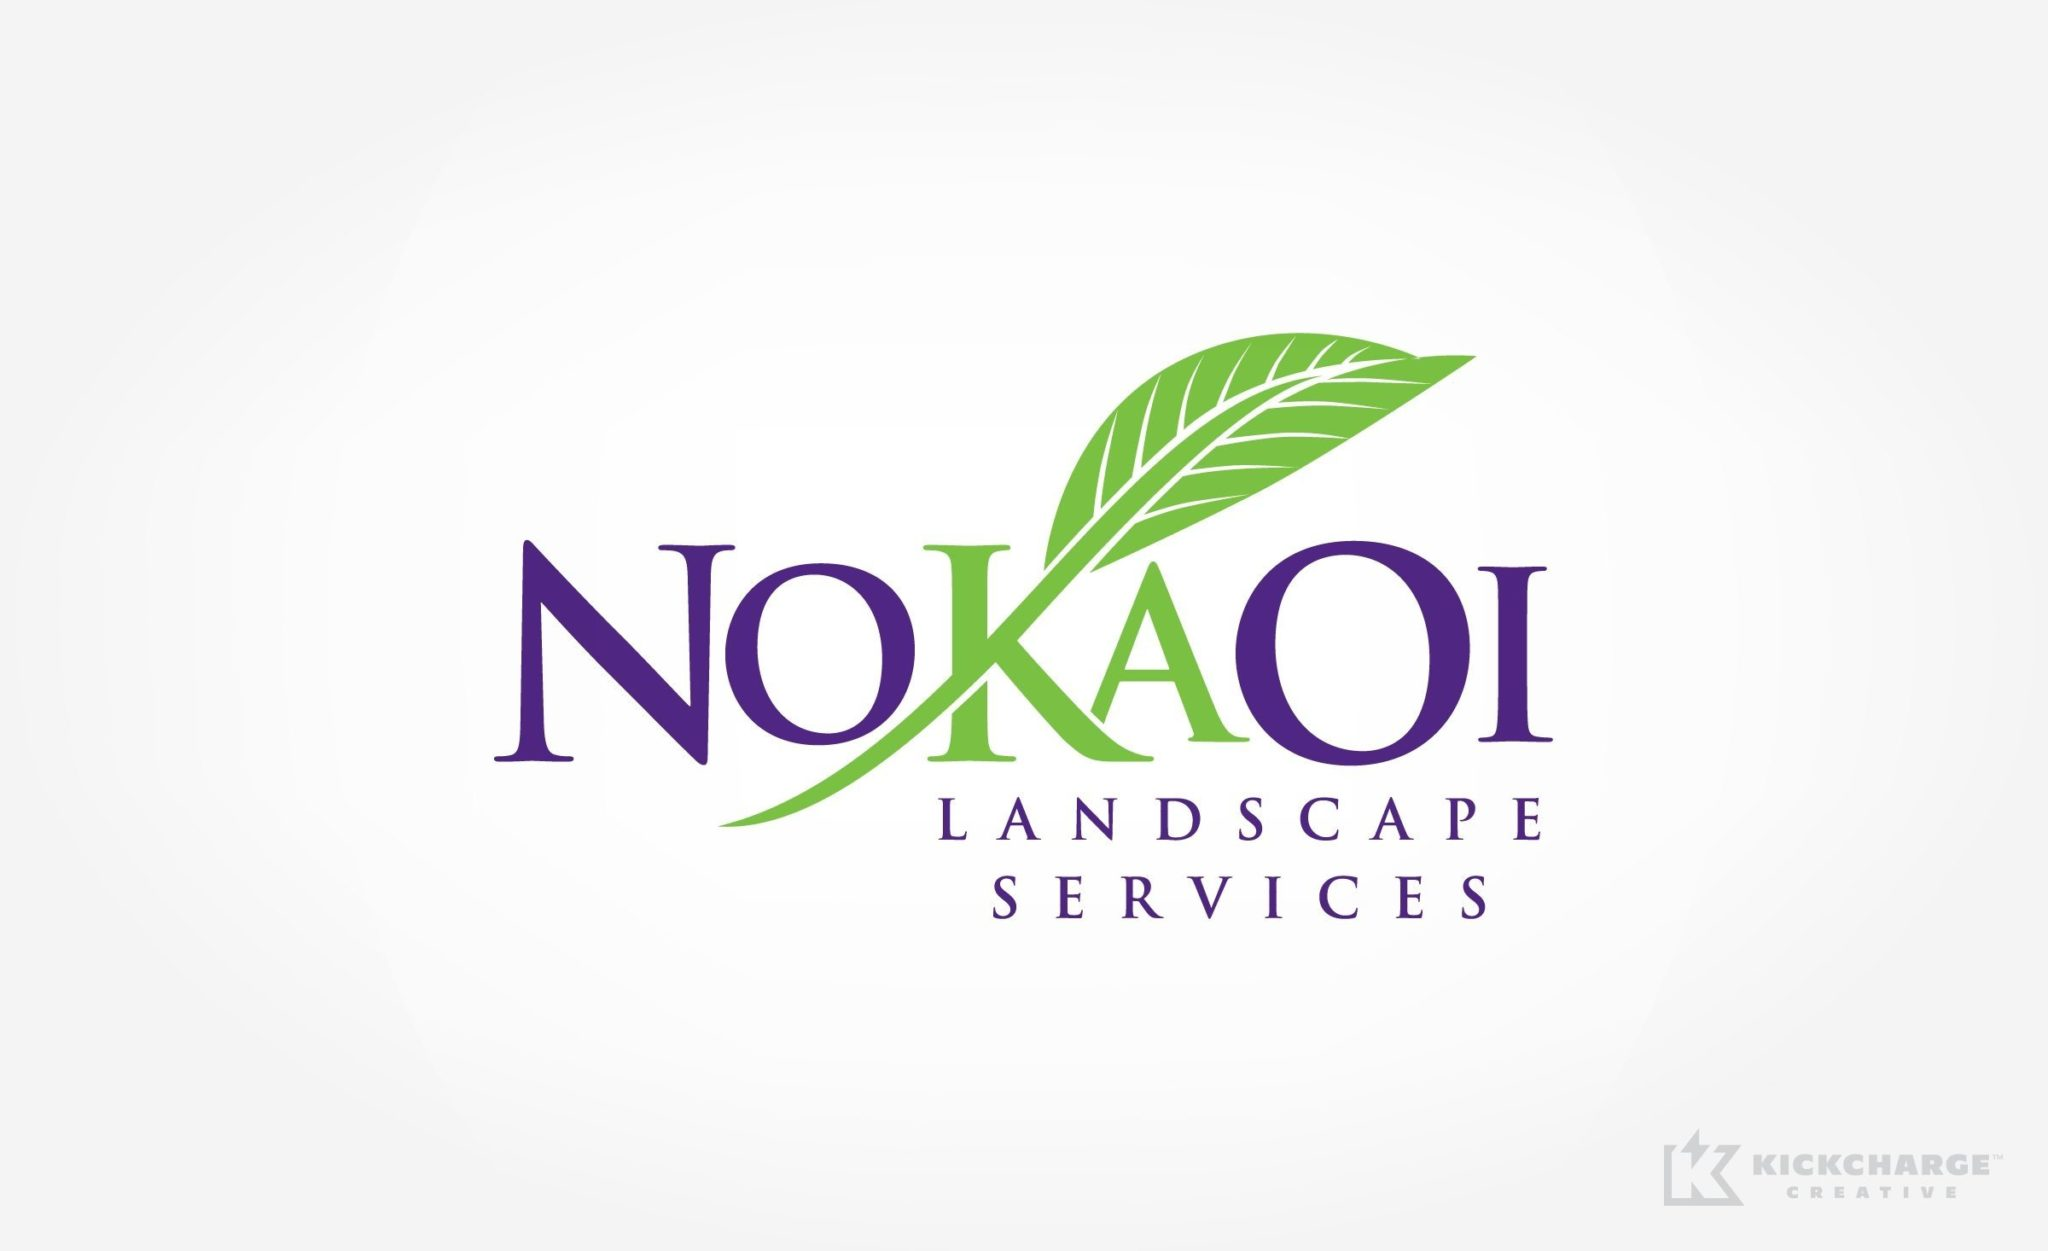 Logo design for a landscape company in Hawaii.